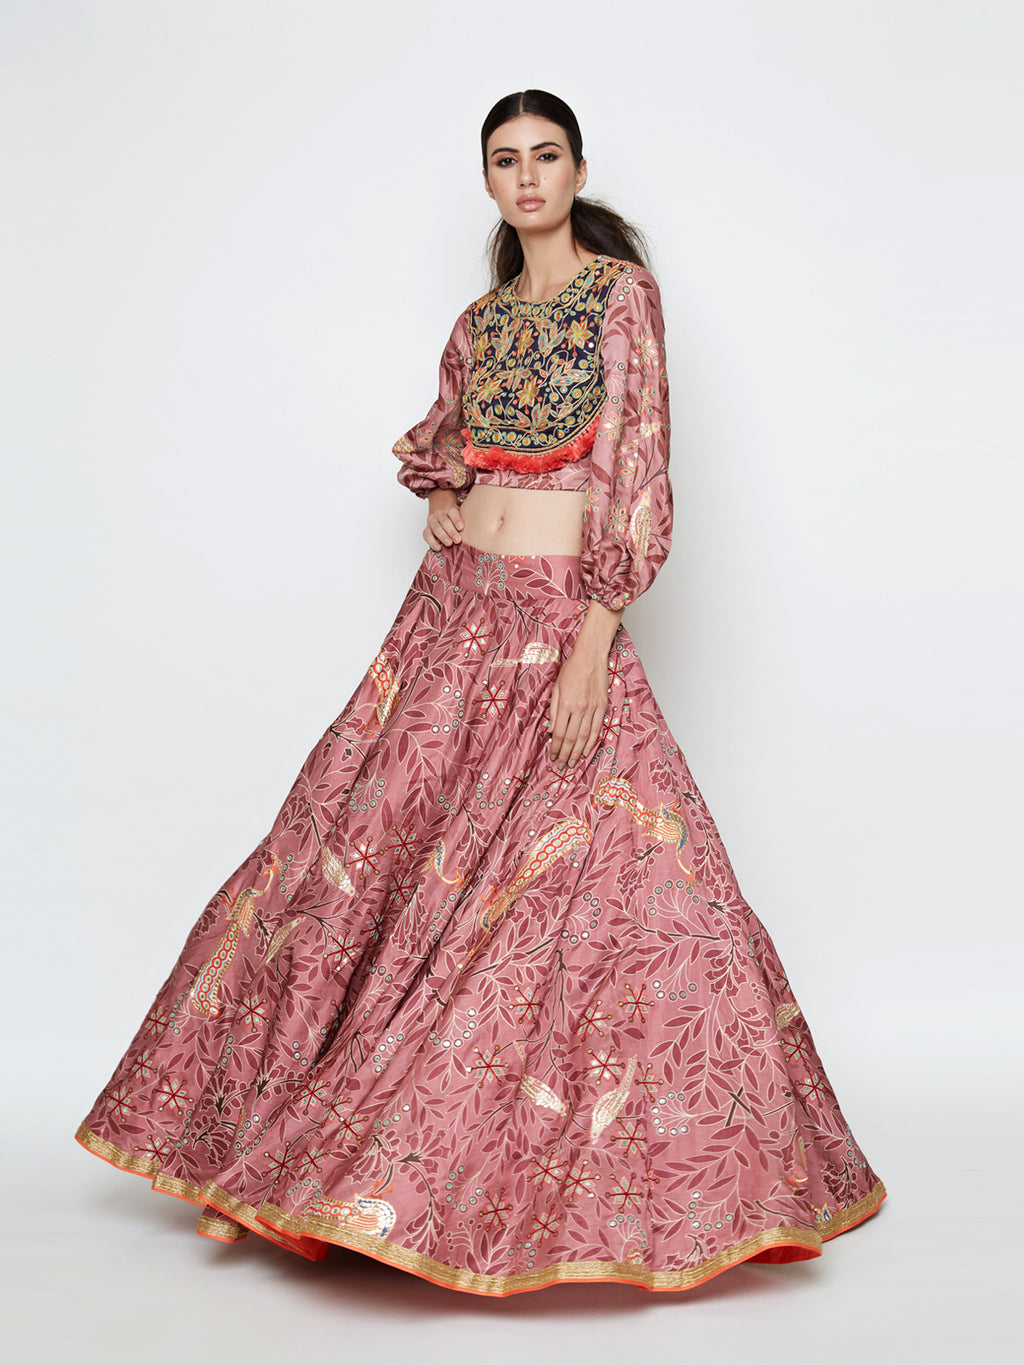 MORBAGH ROSE PINK EMBROIDERED LEHENGA WITH CROP TOP